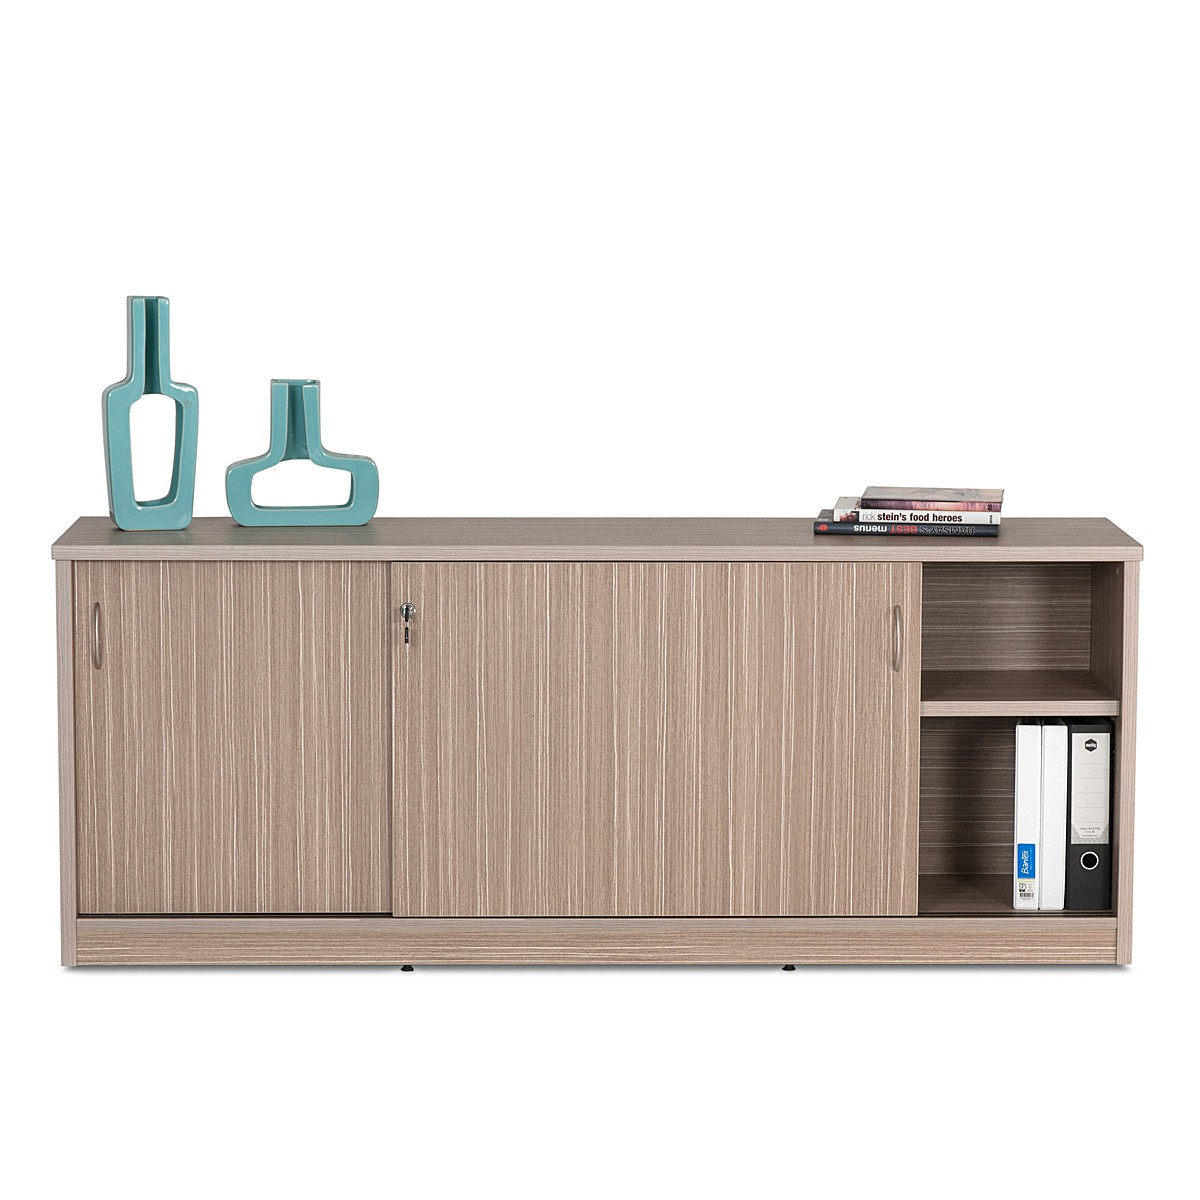 Le Meilleur Sliding Door Credenza Or Buffet Tawny Linewood Ce Mois Ci